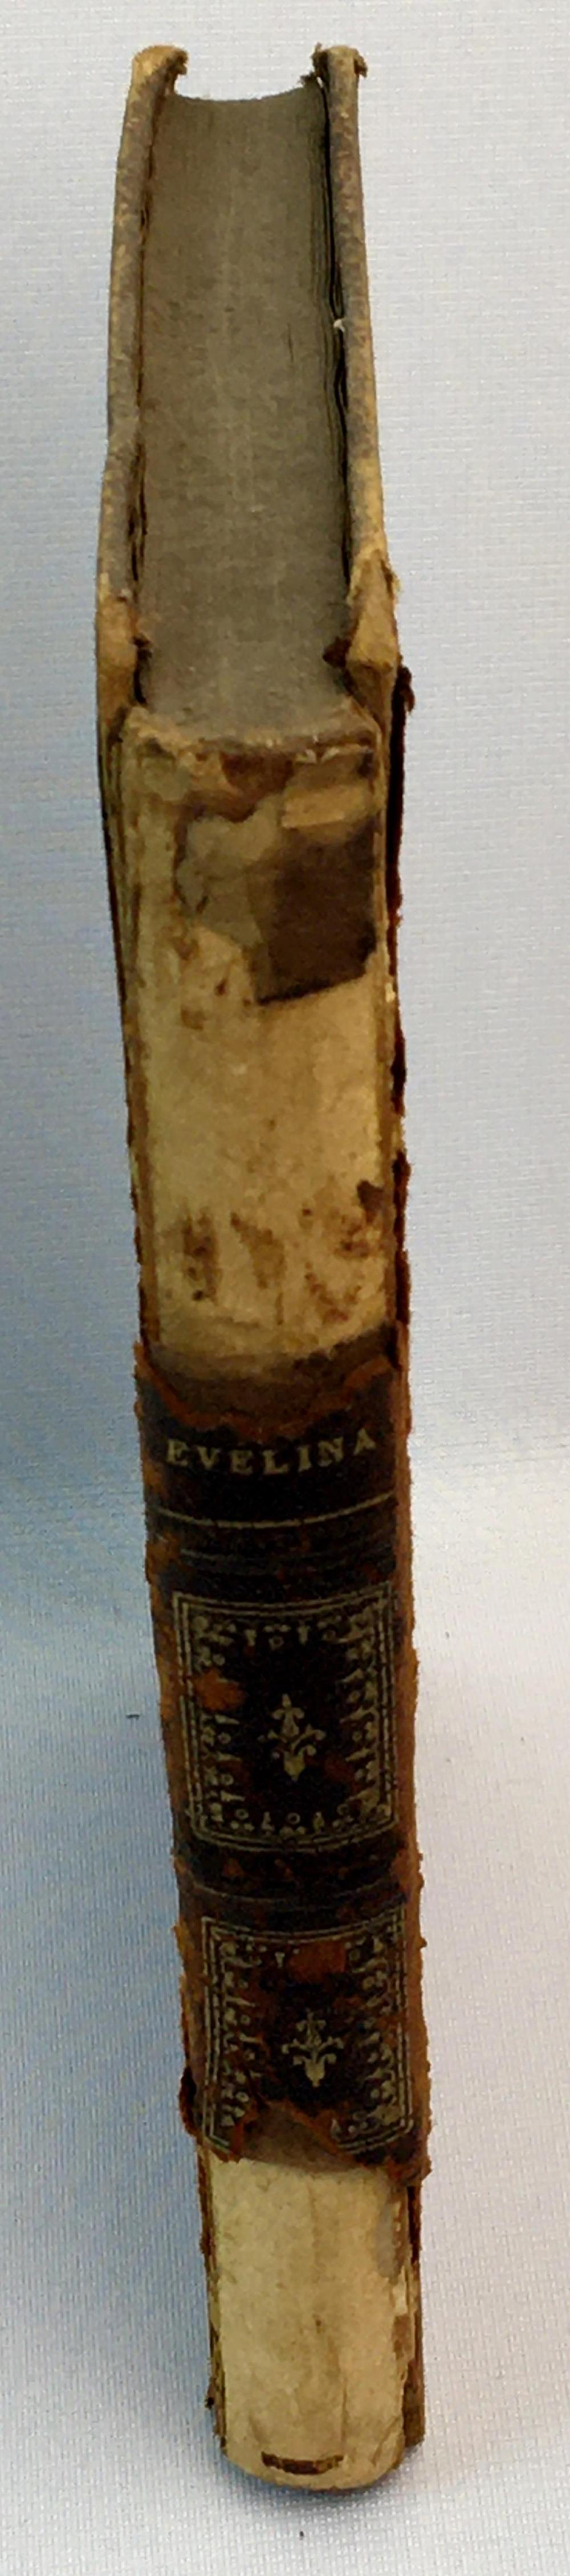 1838 Evelina or The History of a Young Lady's Entrance Into The World by Miss Burney